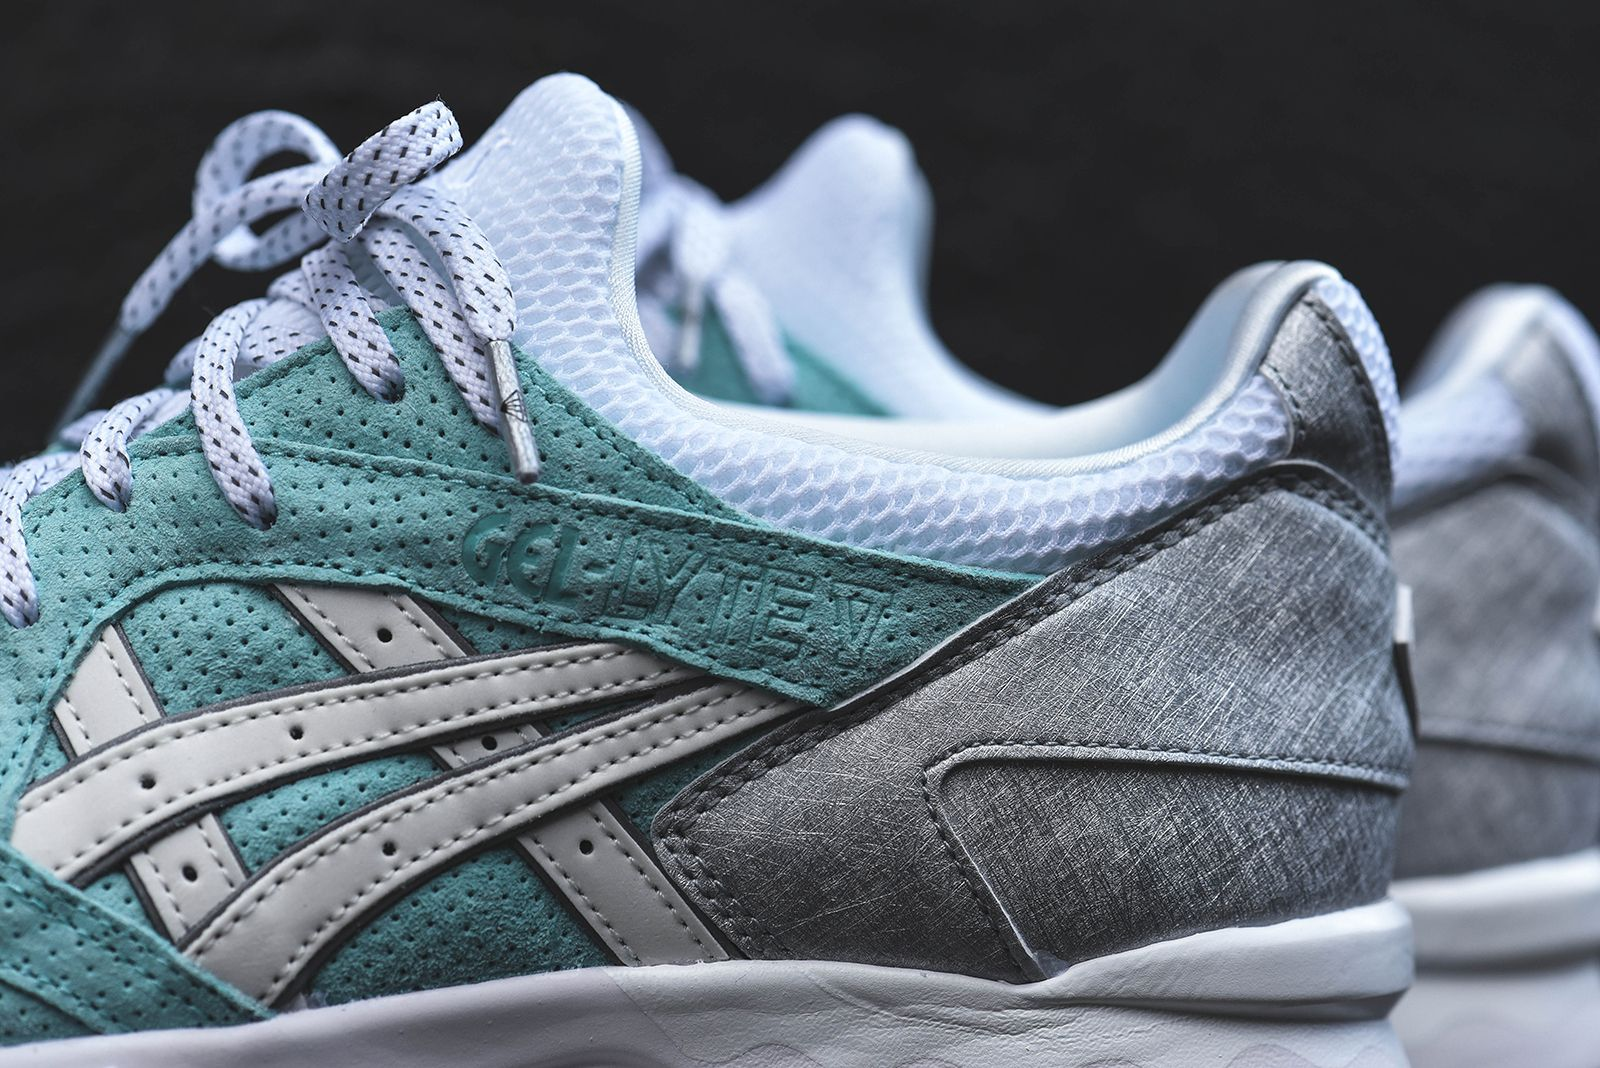 Ronnie Fieg x Diamond Supply Co. x Asics Gel Saga & Gel Lyte V |